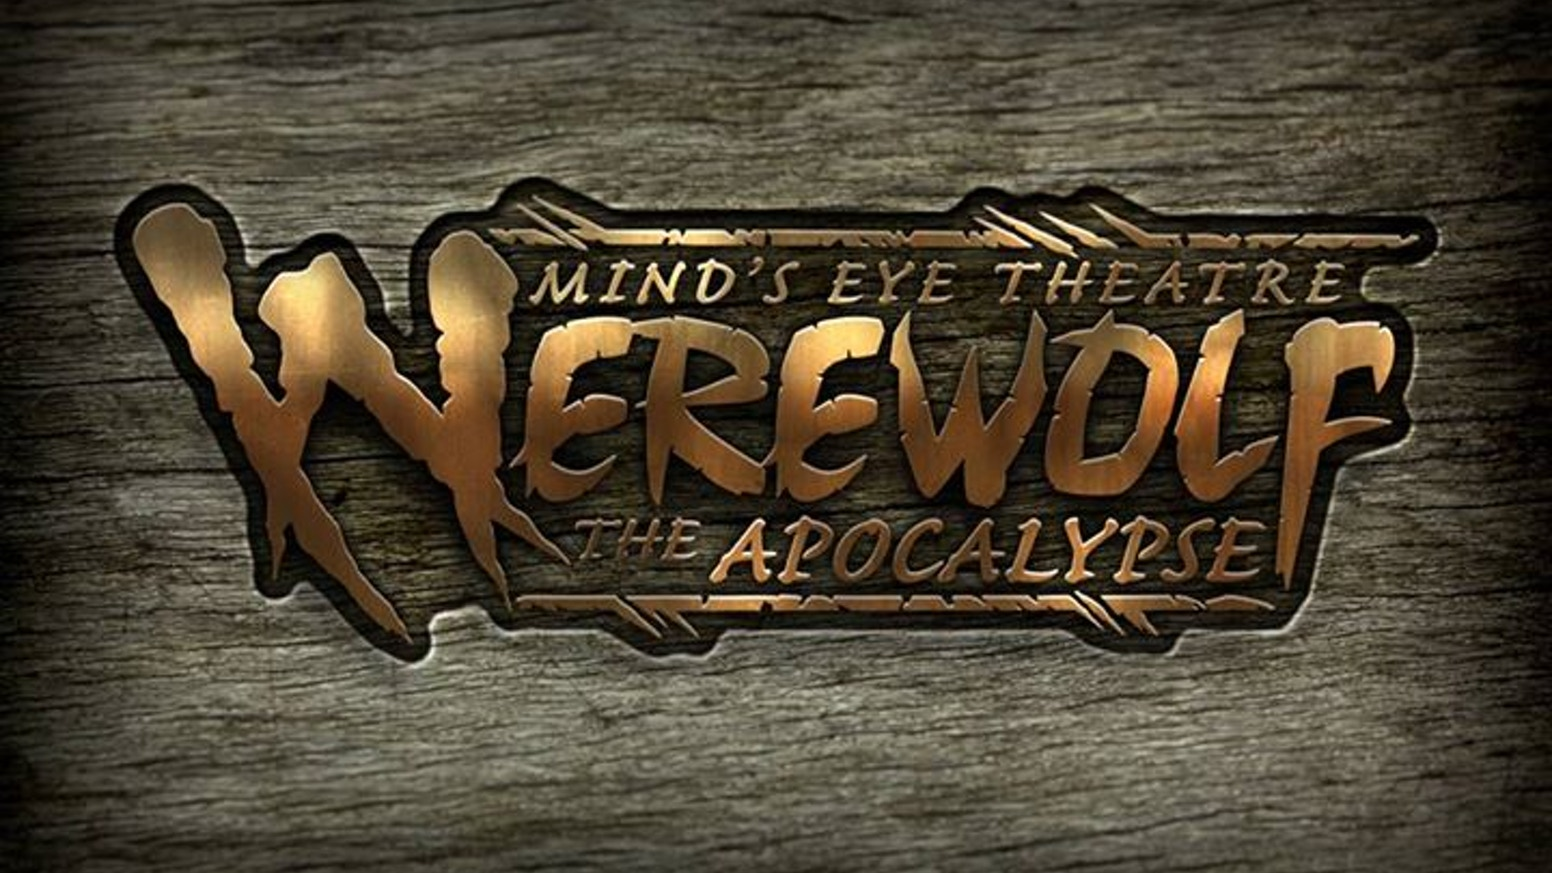 Thank you to all our backers for helping us create this Mind's Eye Theatre: Werewolf The Apocalypse book!